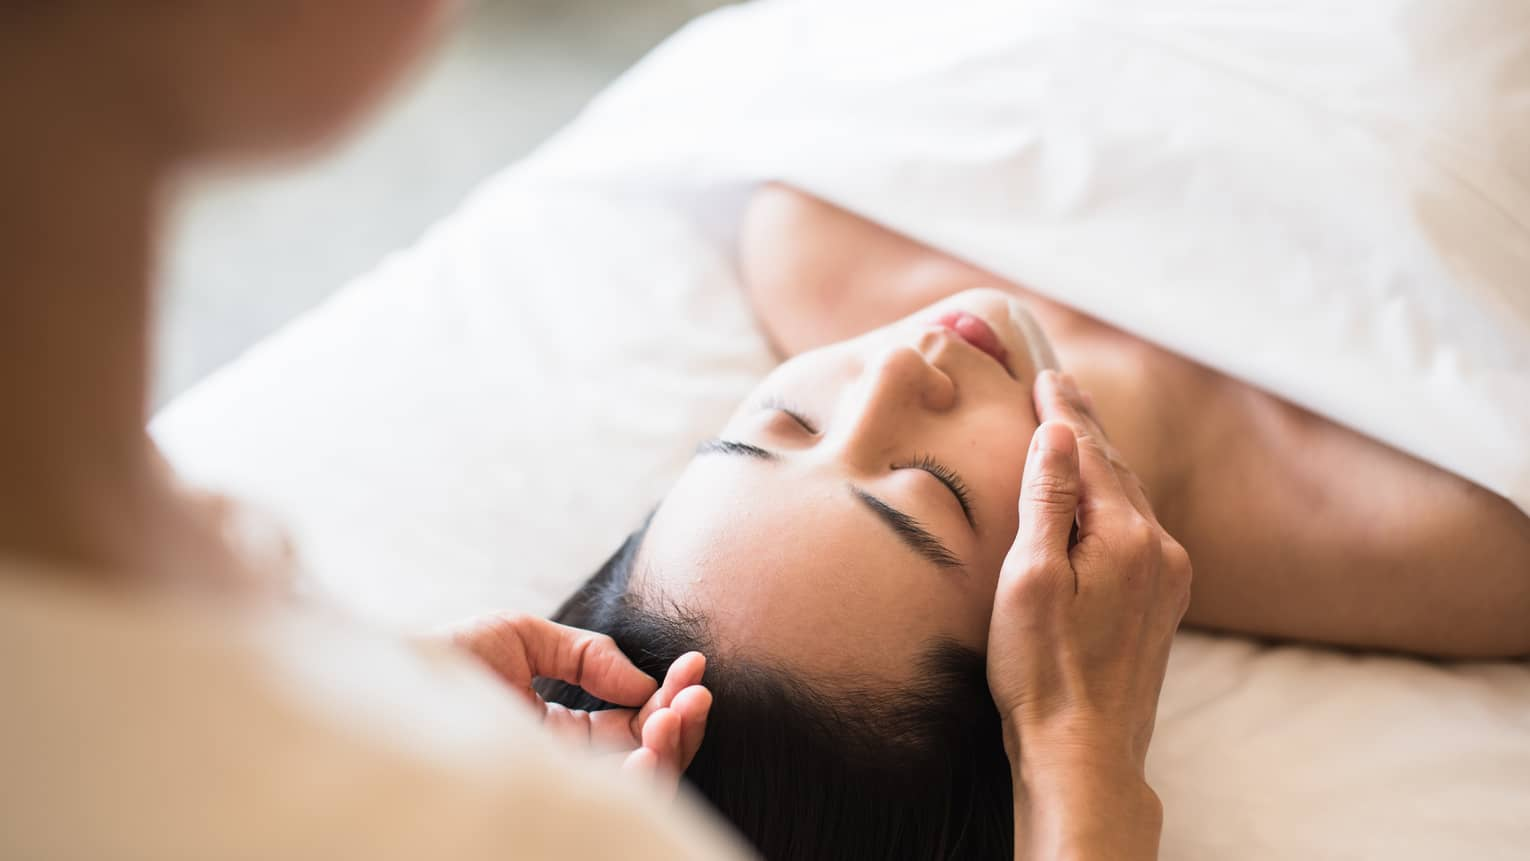 Woman lying under white sheet on massage table, eyes closed as spa staff rubs lotion on her chin